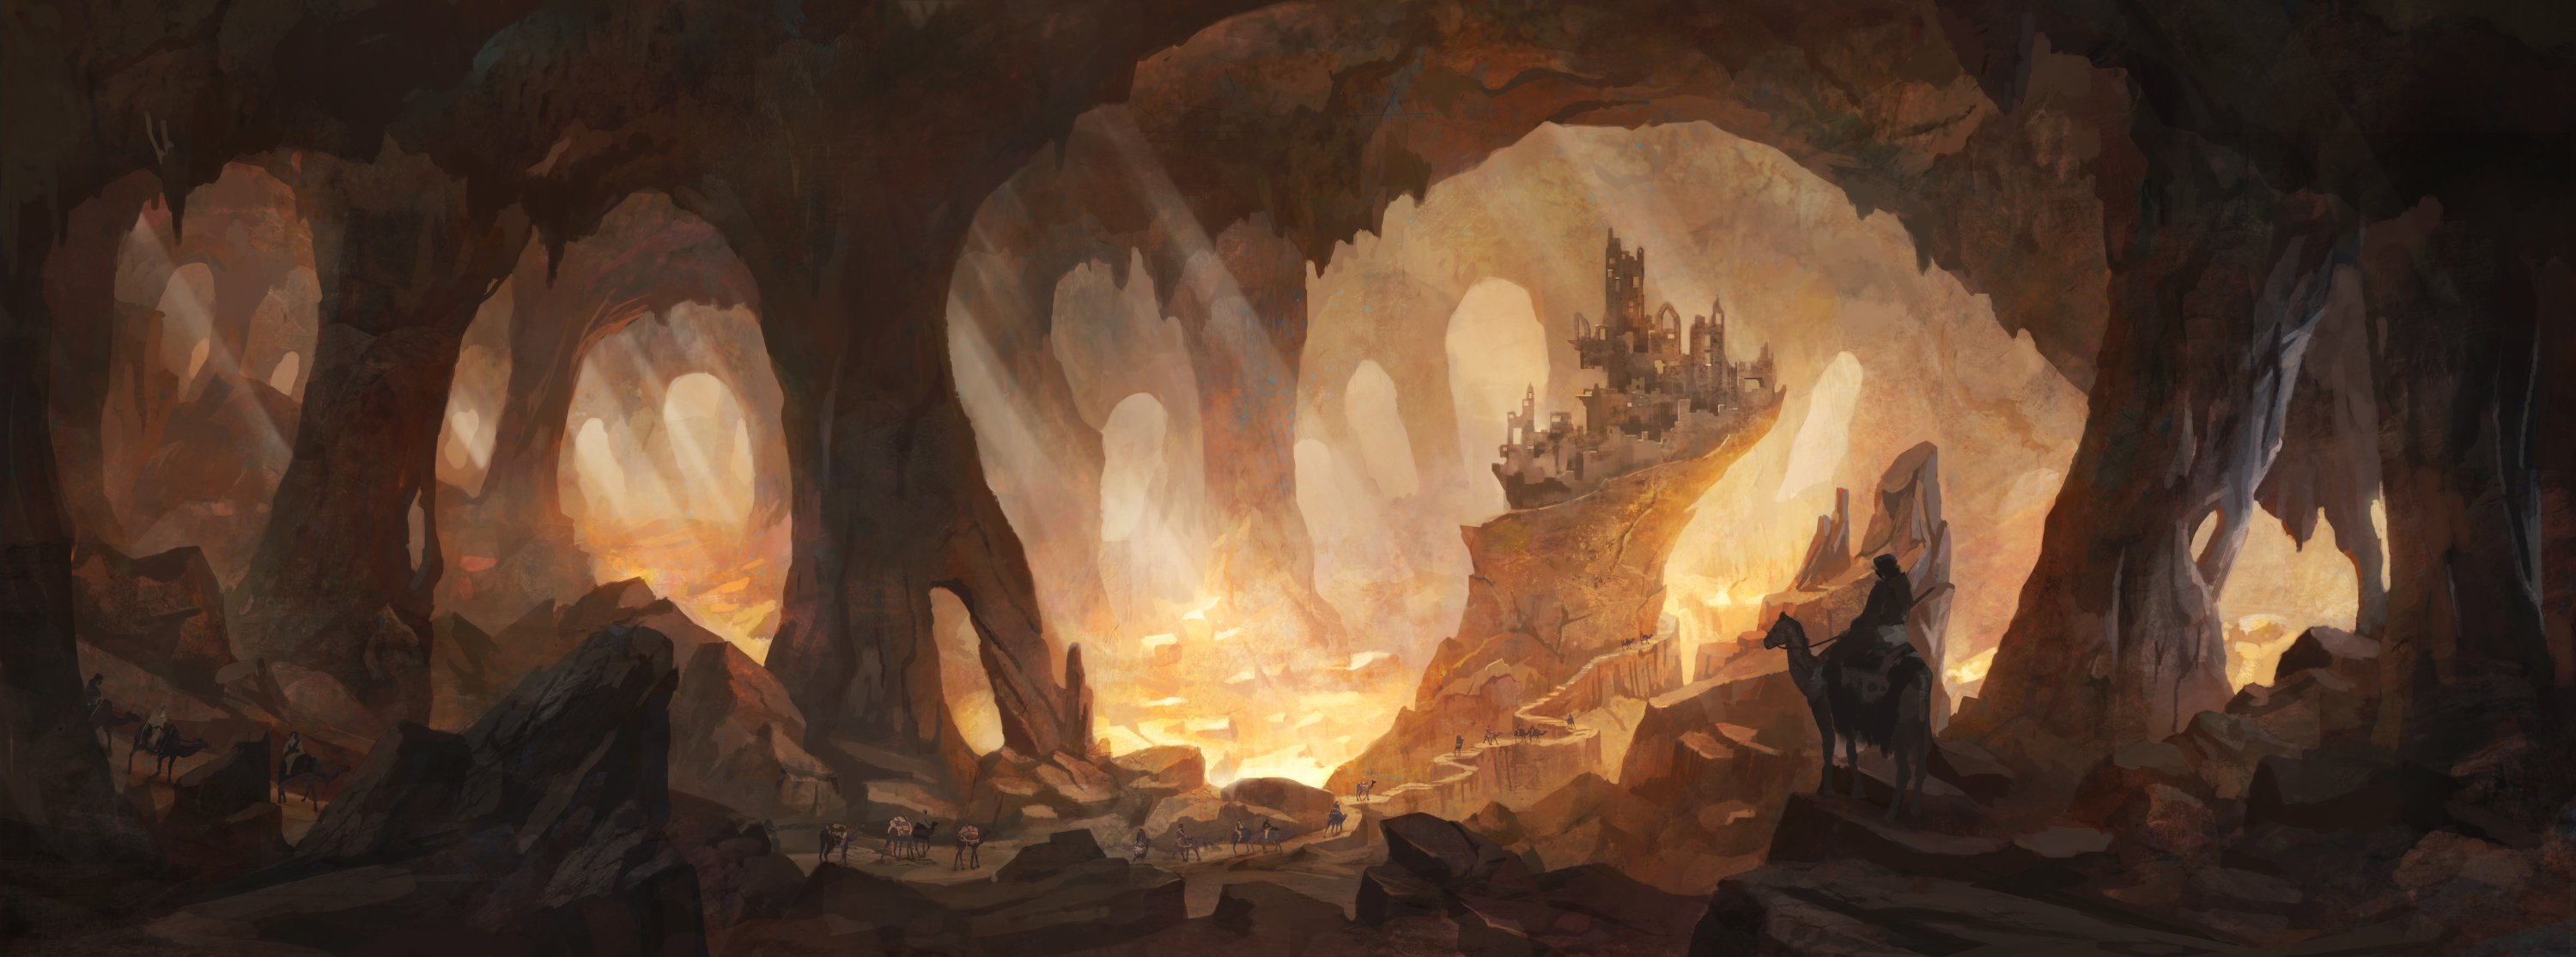 Agartha is a legendary kingdom that is said to be located in the Earth's core